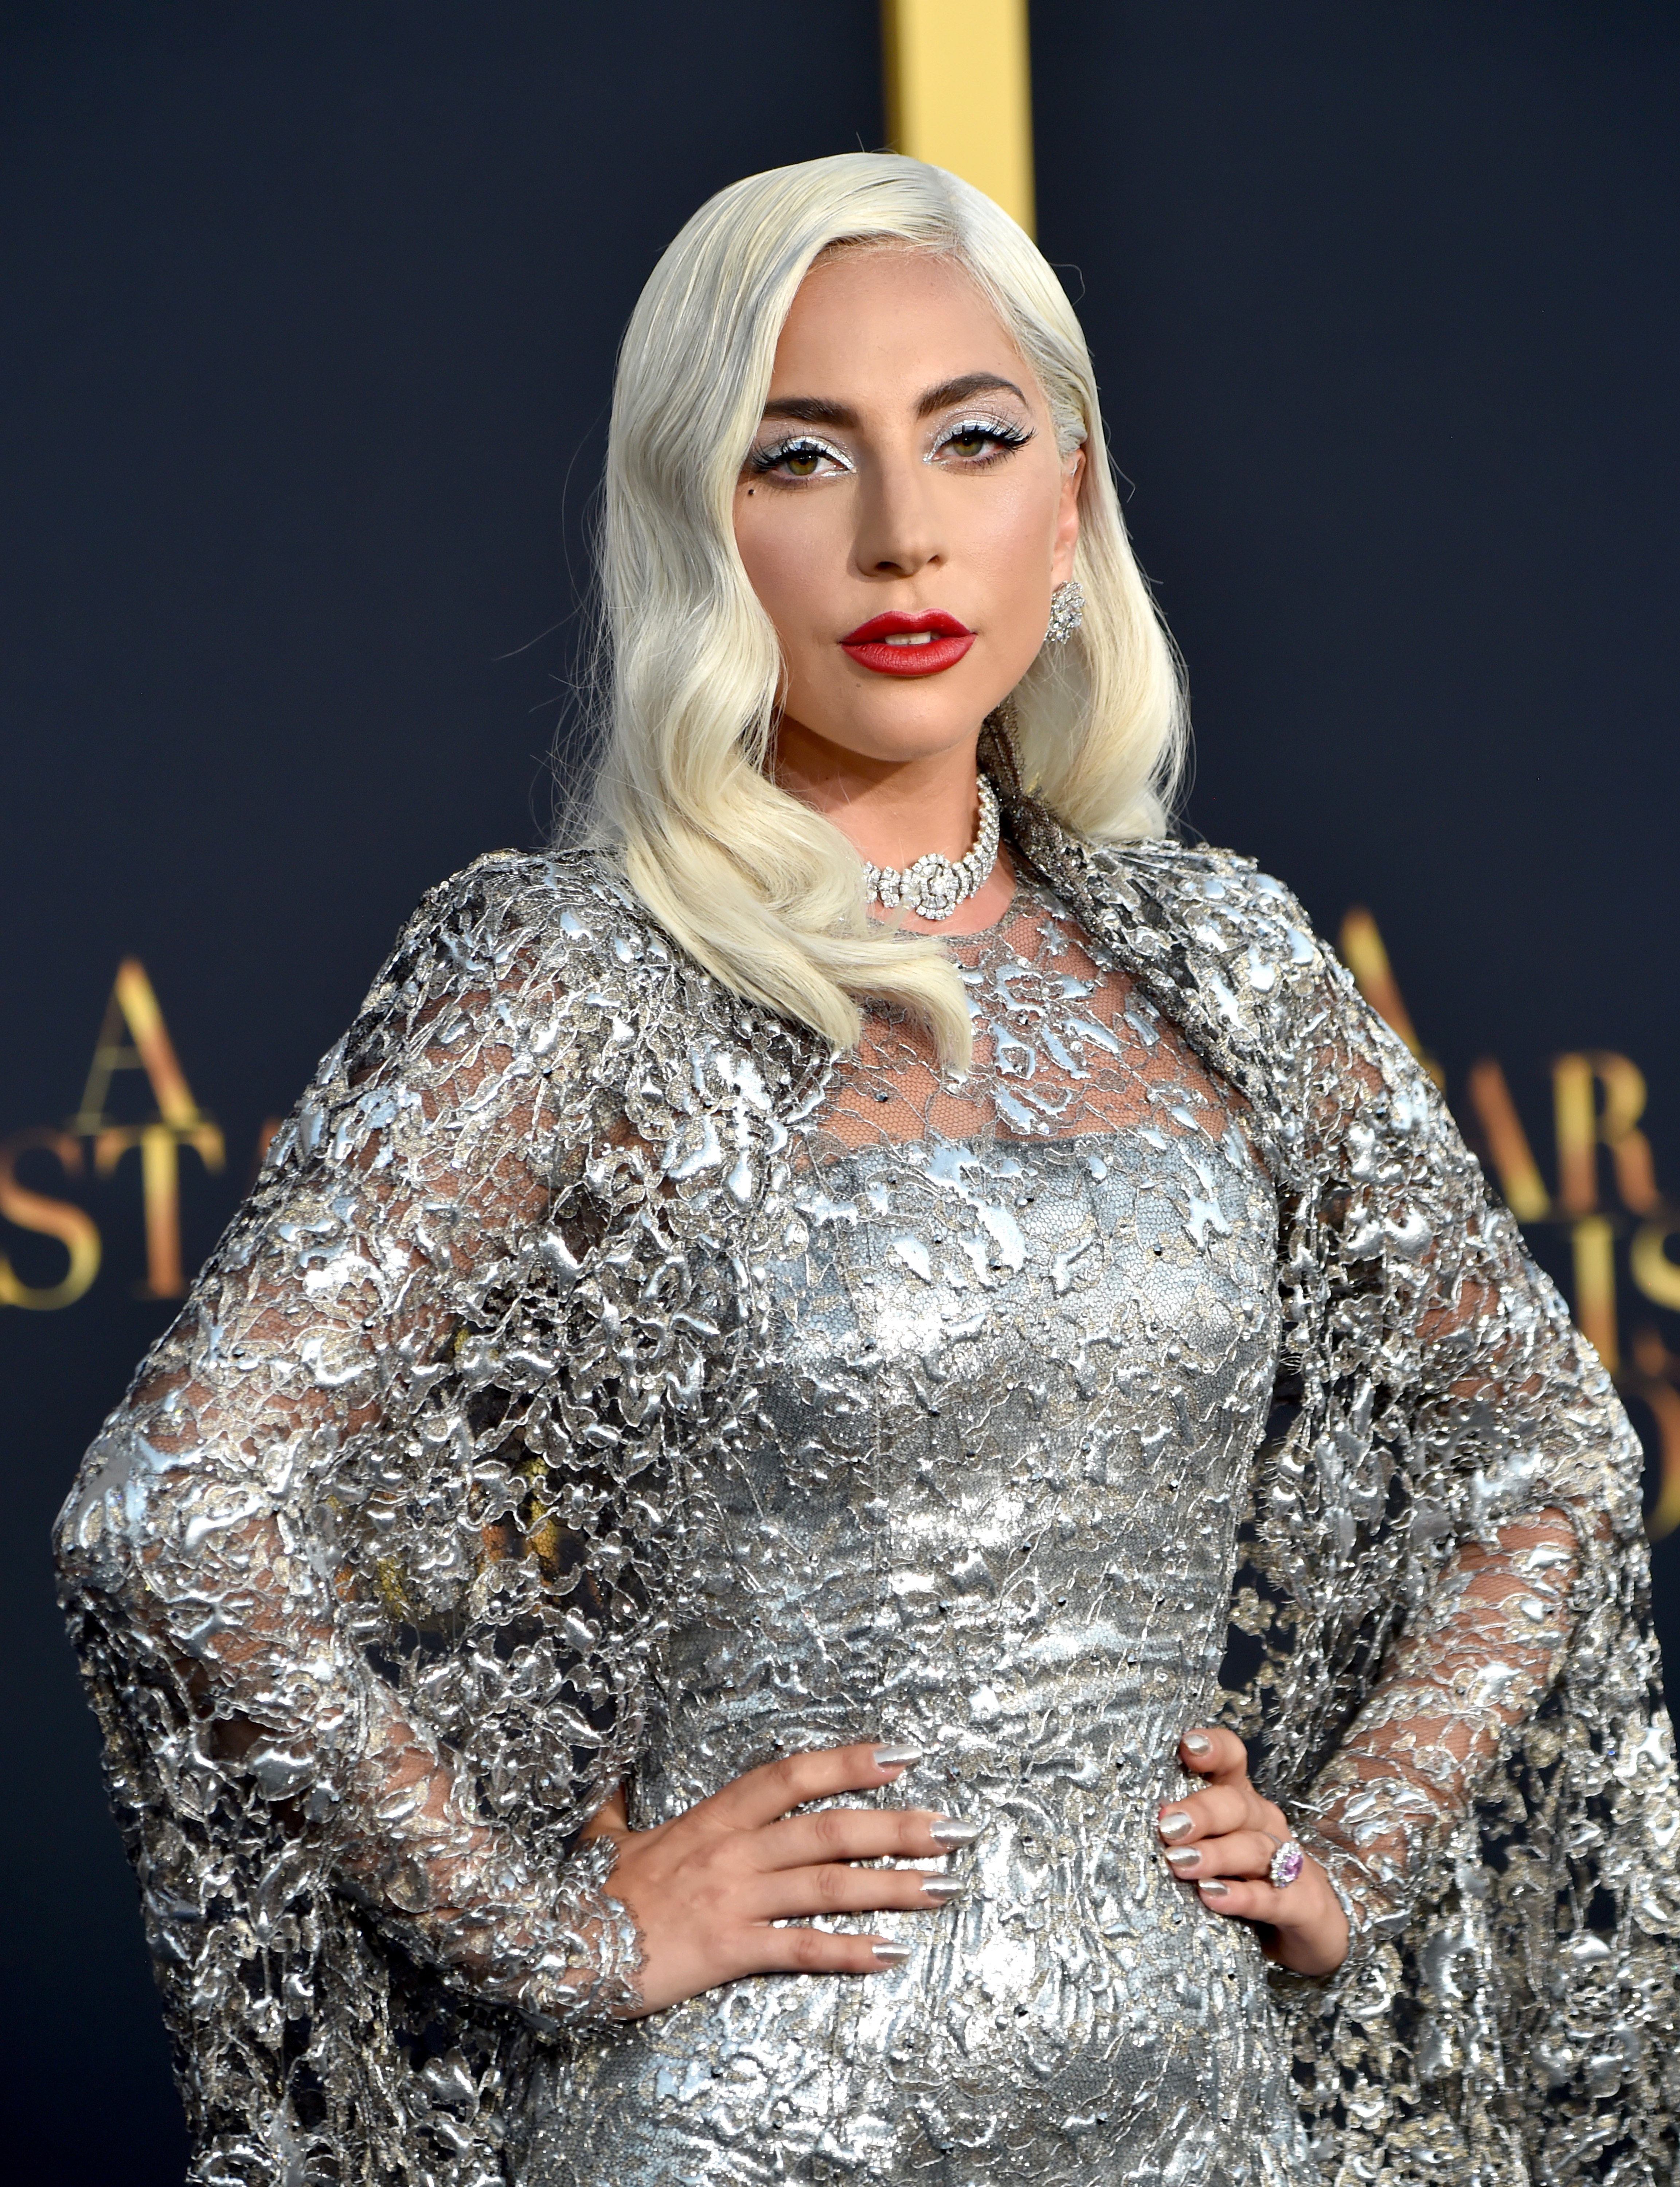 Image Source: Getty Images| A photo of Lady Gaga